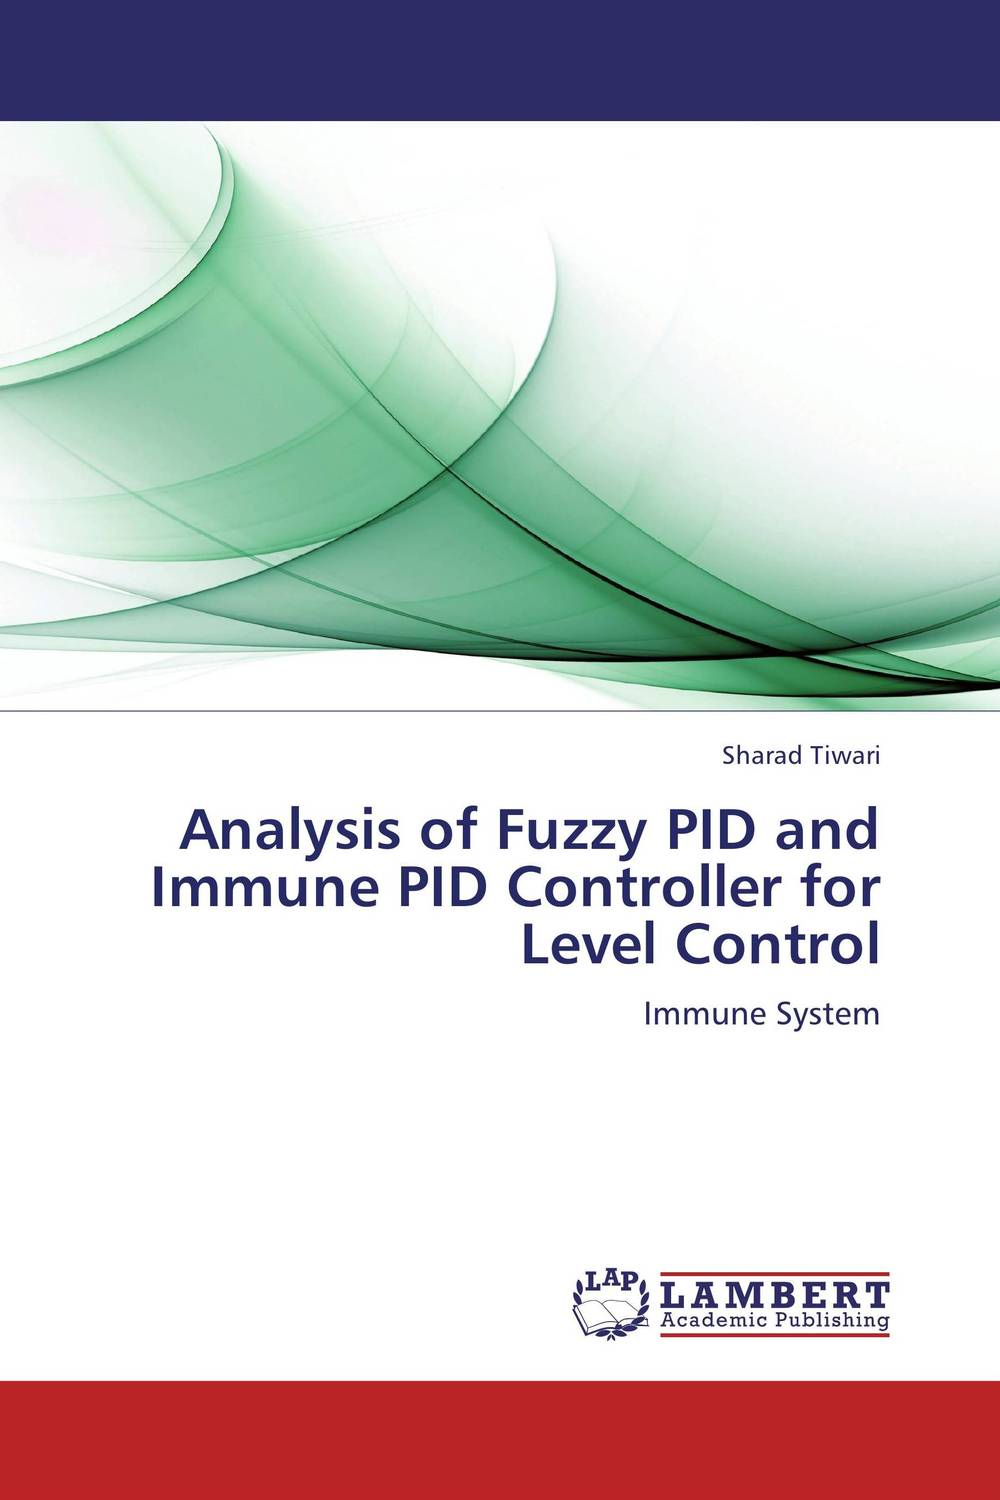 Analysis of Fuzzy PID and Immune PID Controller for Level Control